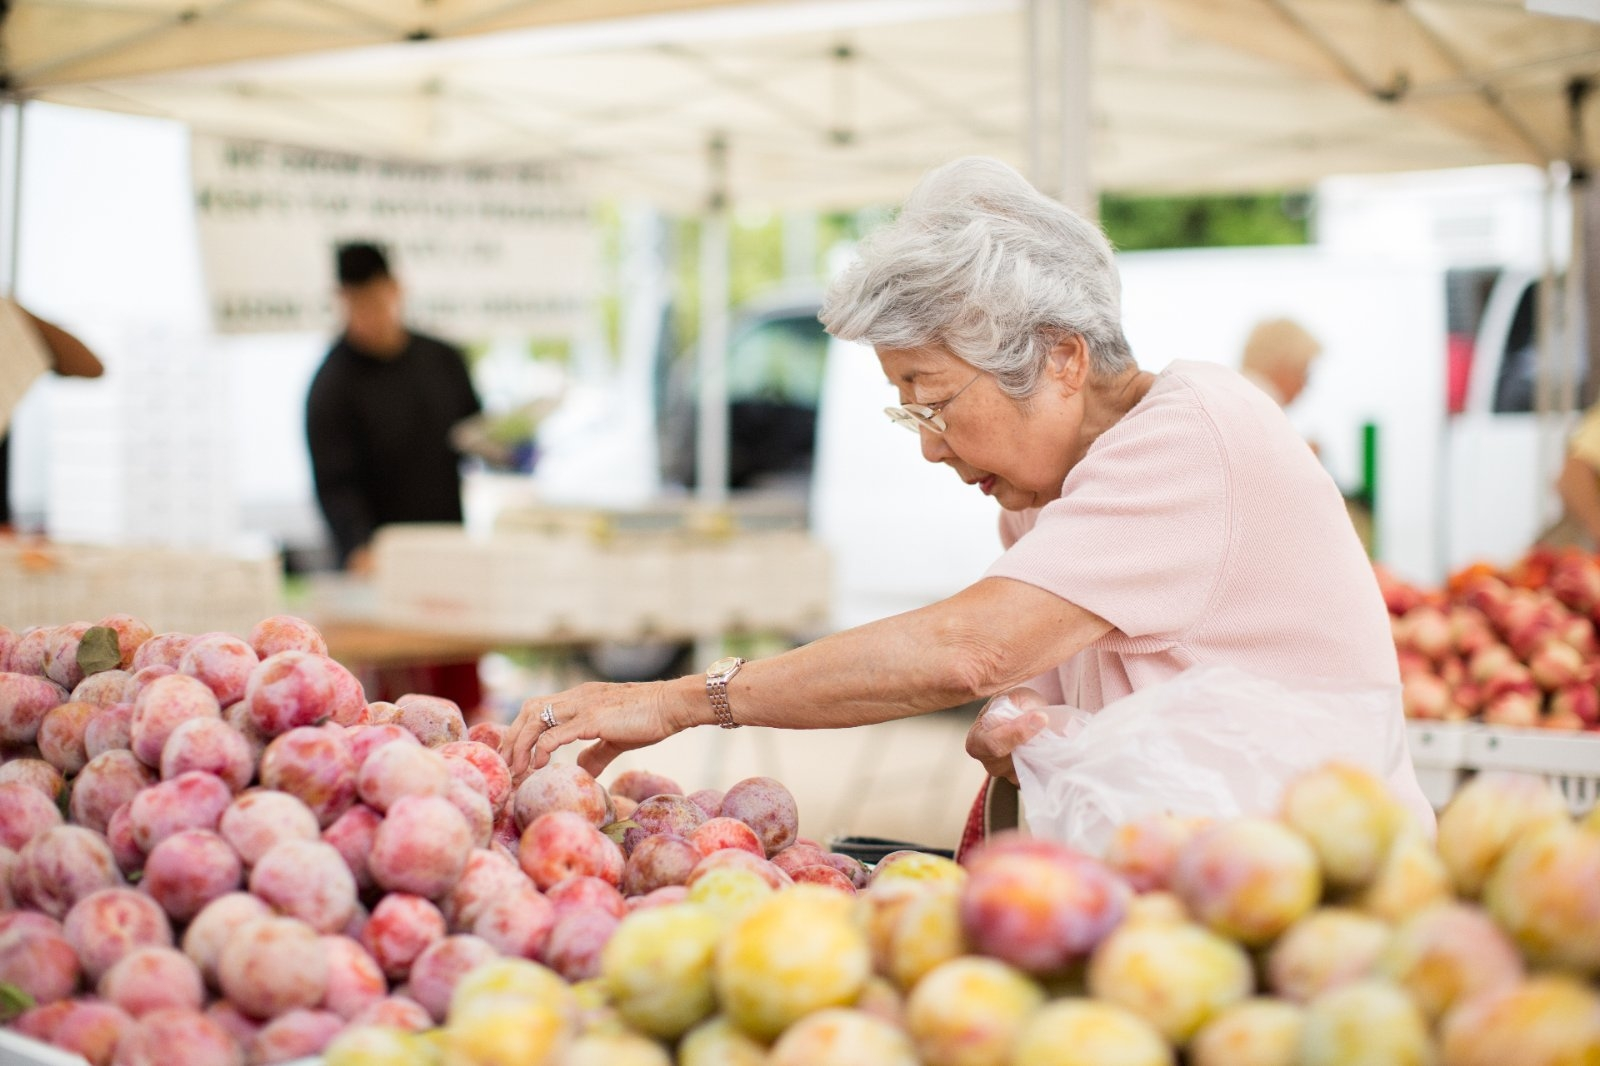 A woman browses fresh fruit at a farmers' market.